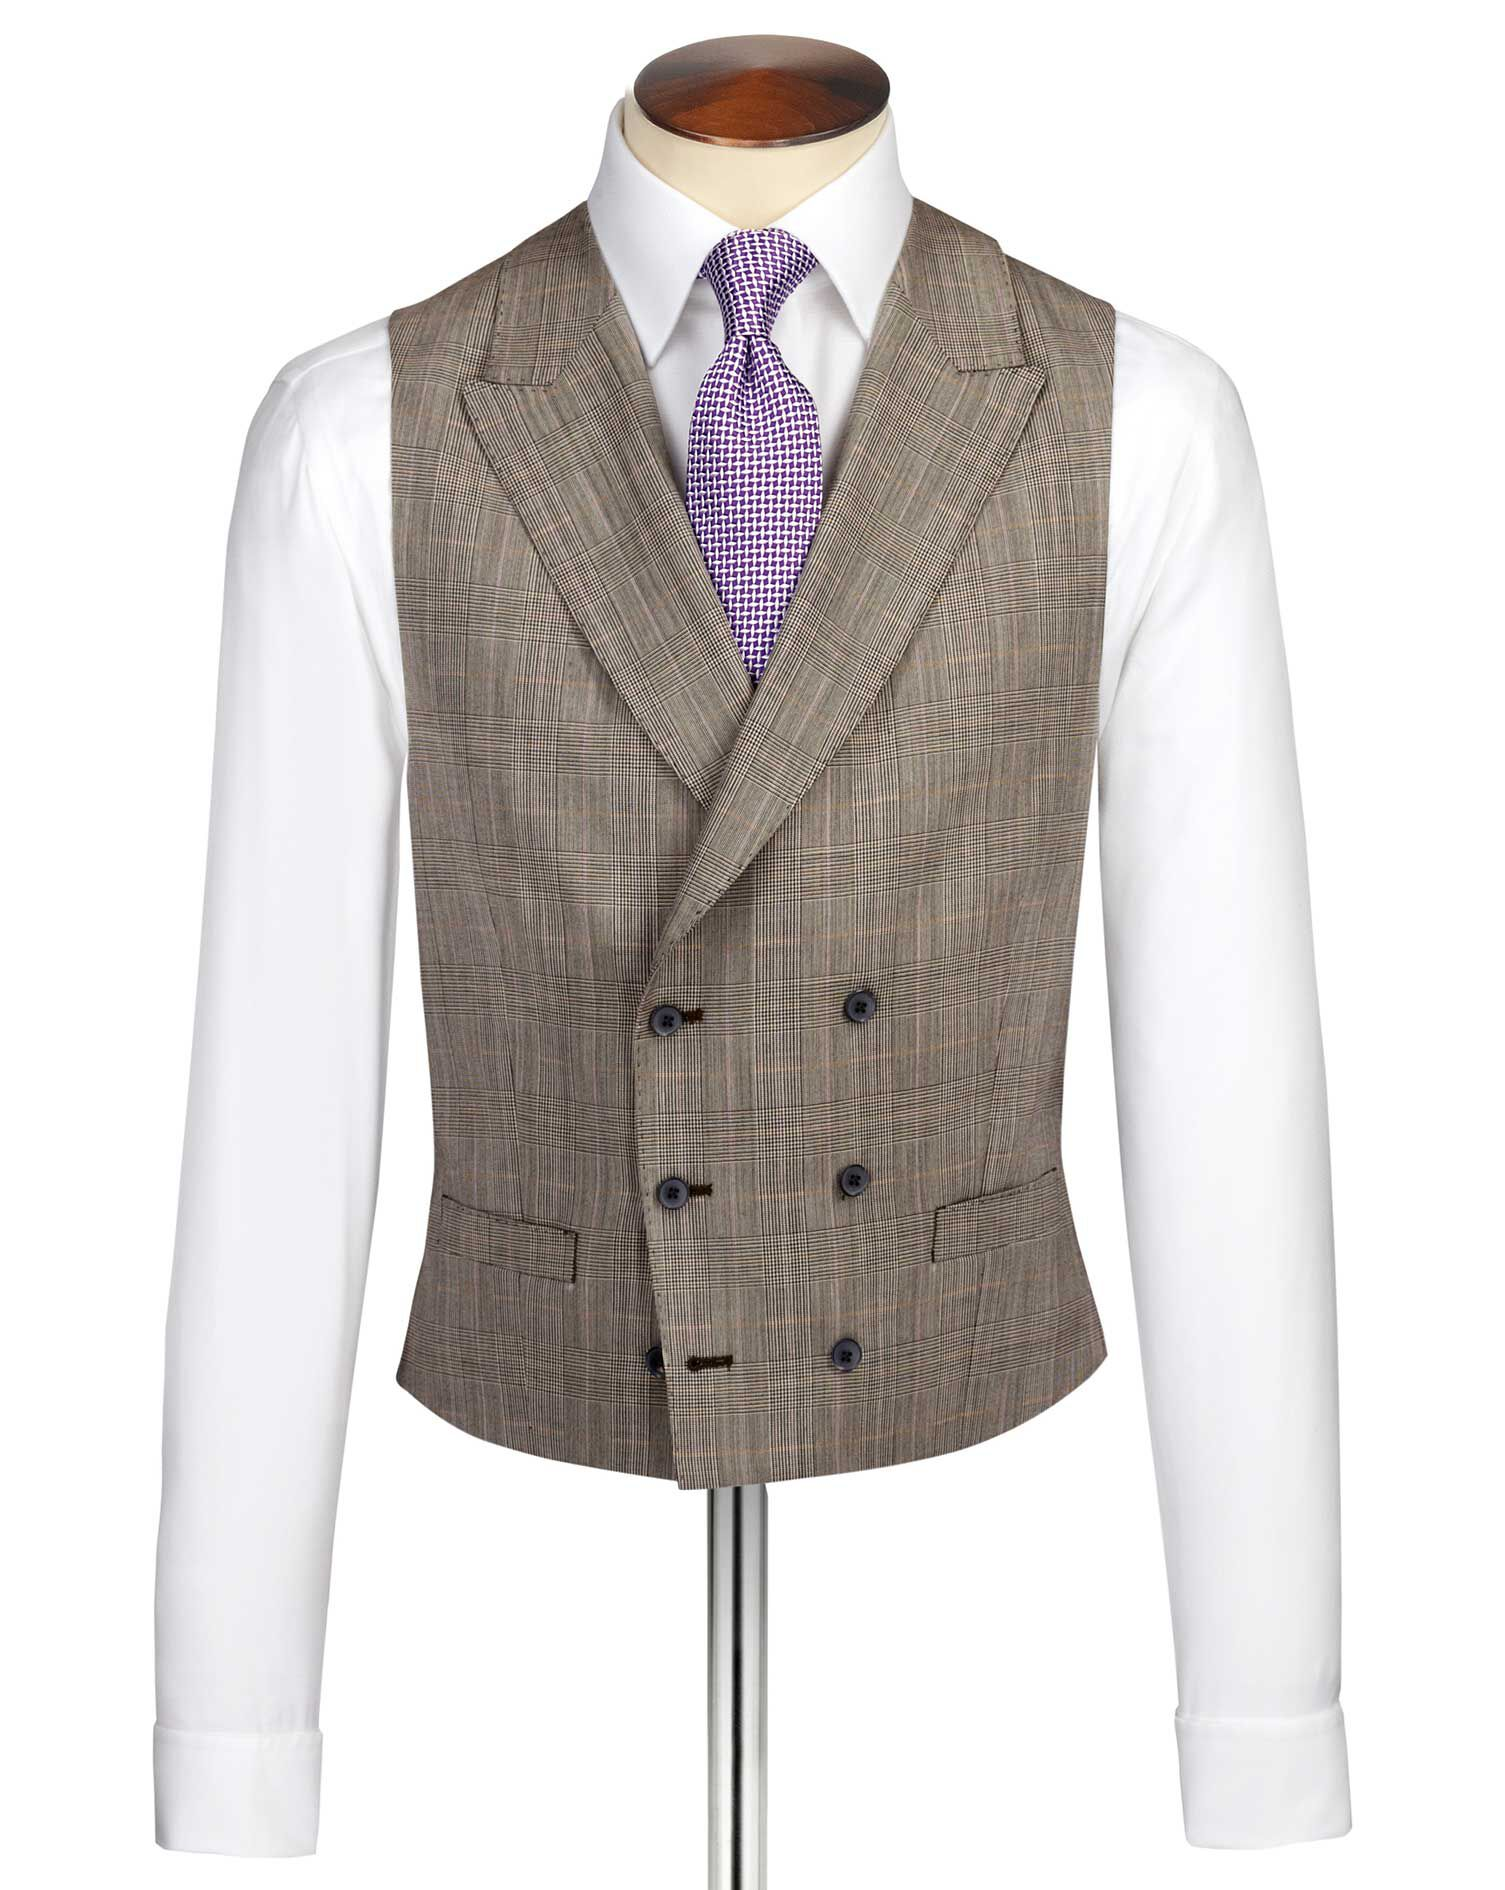 1920s Mens Clothing Charles Tyrwhitt Beige British Panama Luxury Check Suit Wool Waistcoat Size w42 £80.00 AT vintagedancer.com